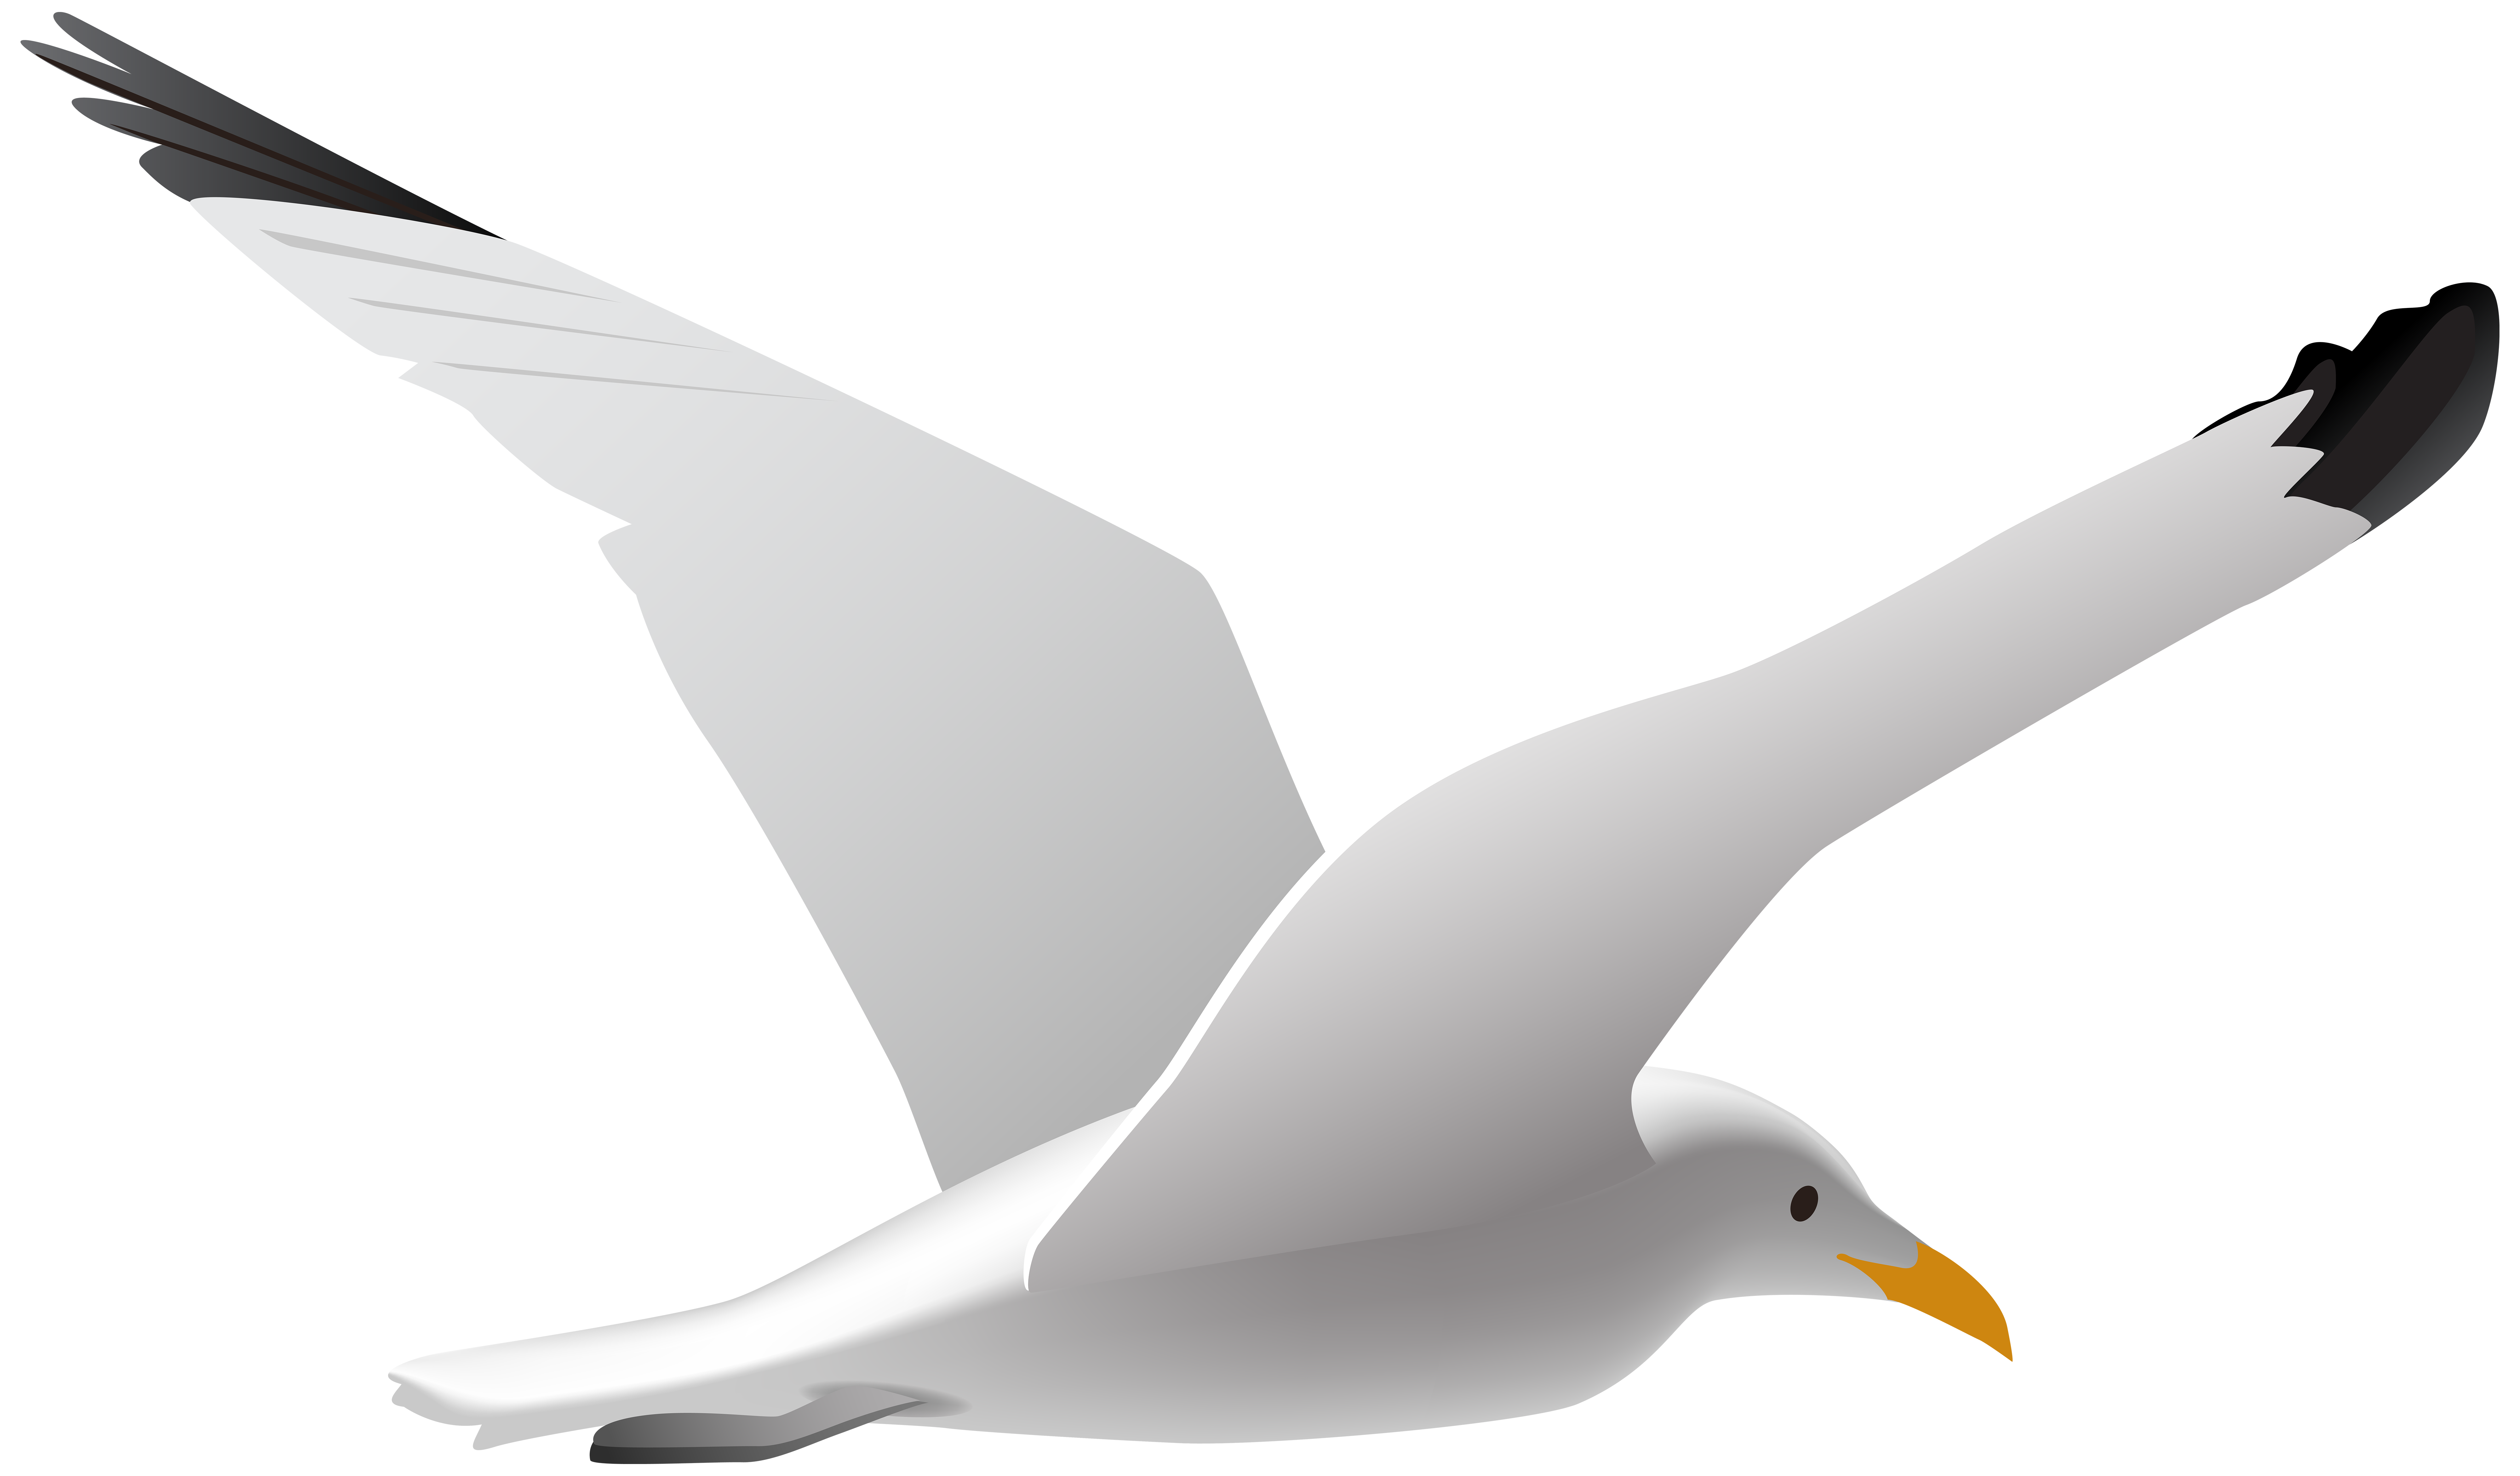 Seagull clipart free clip art library Seagull PNG Clip Art Image | Gallery Yopriceville - High-Quality ... clip art library